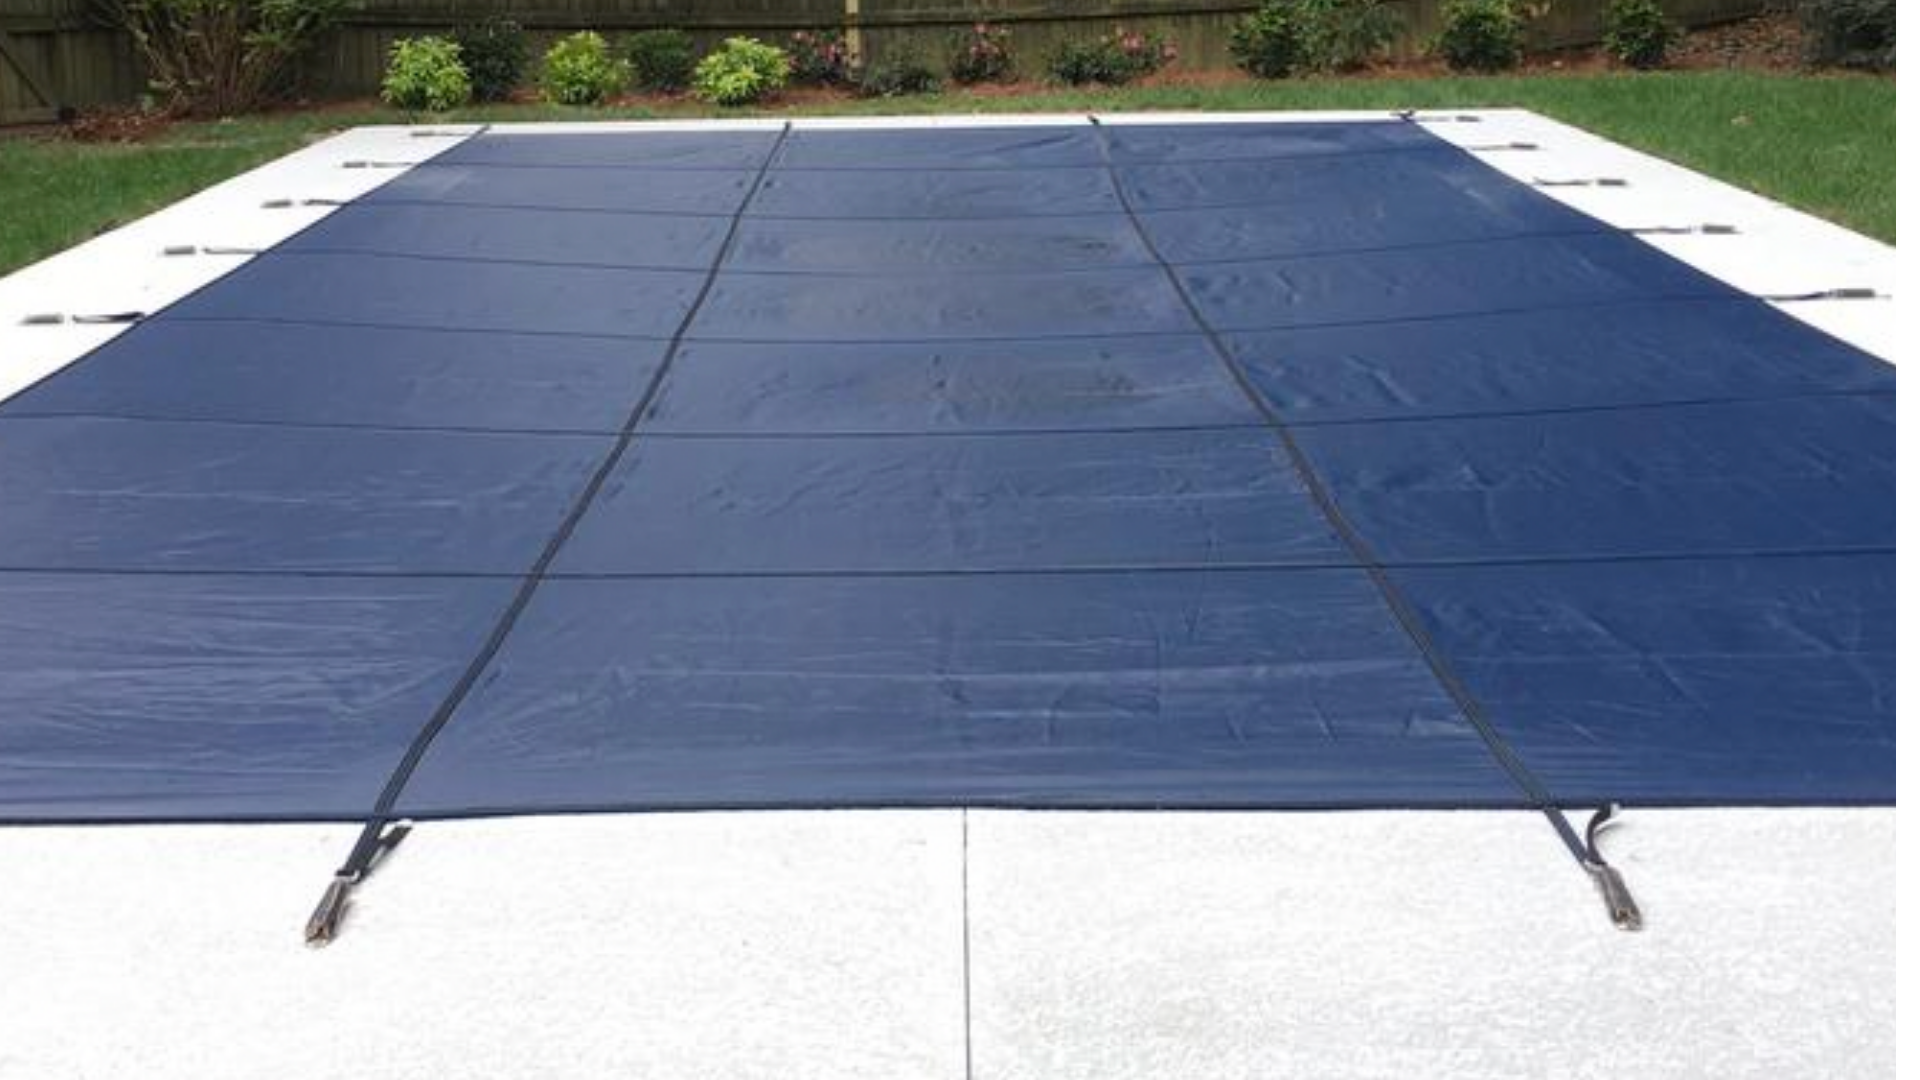 10 pool covers to protect your backyard oasis before winter sets in